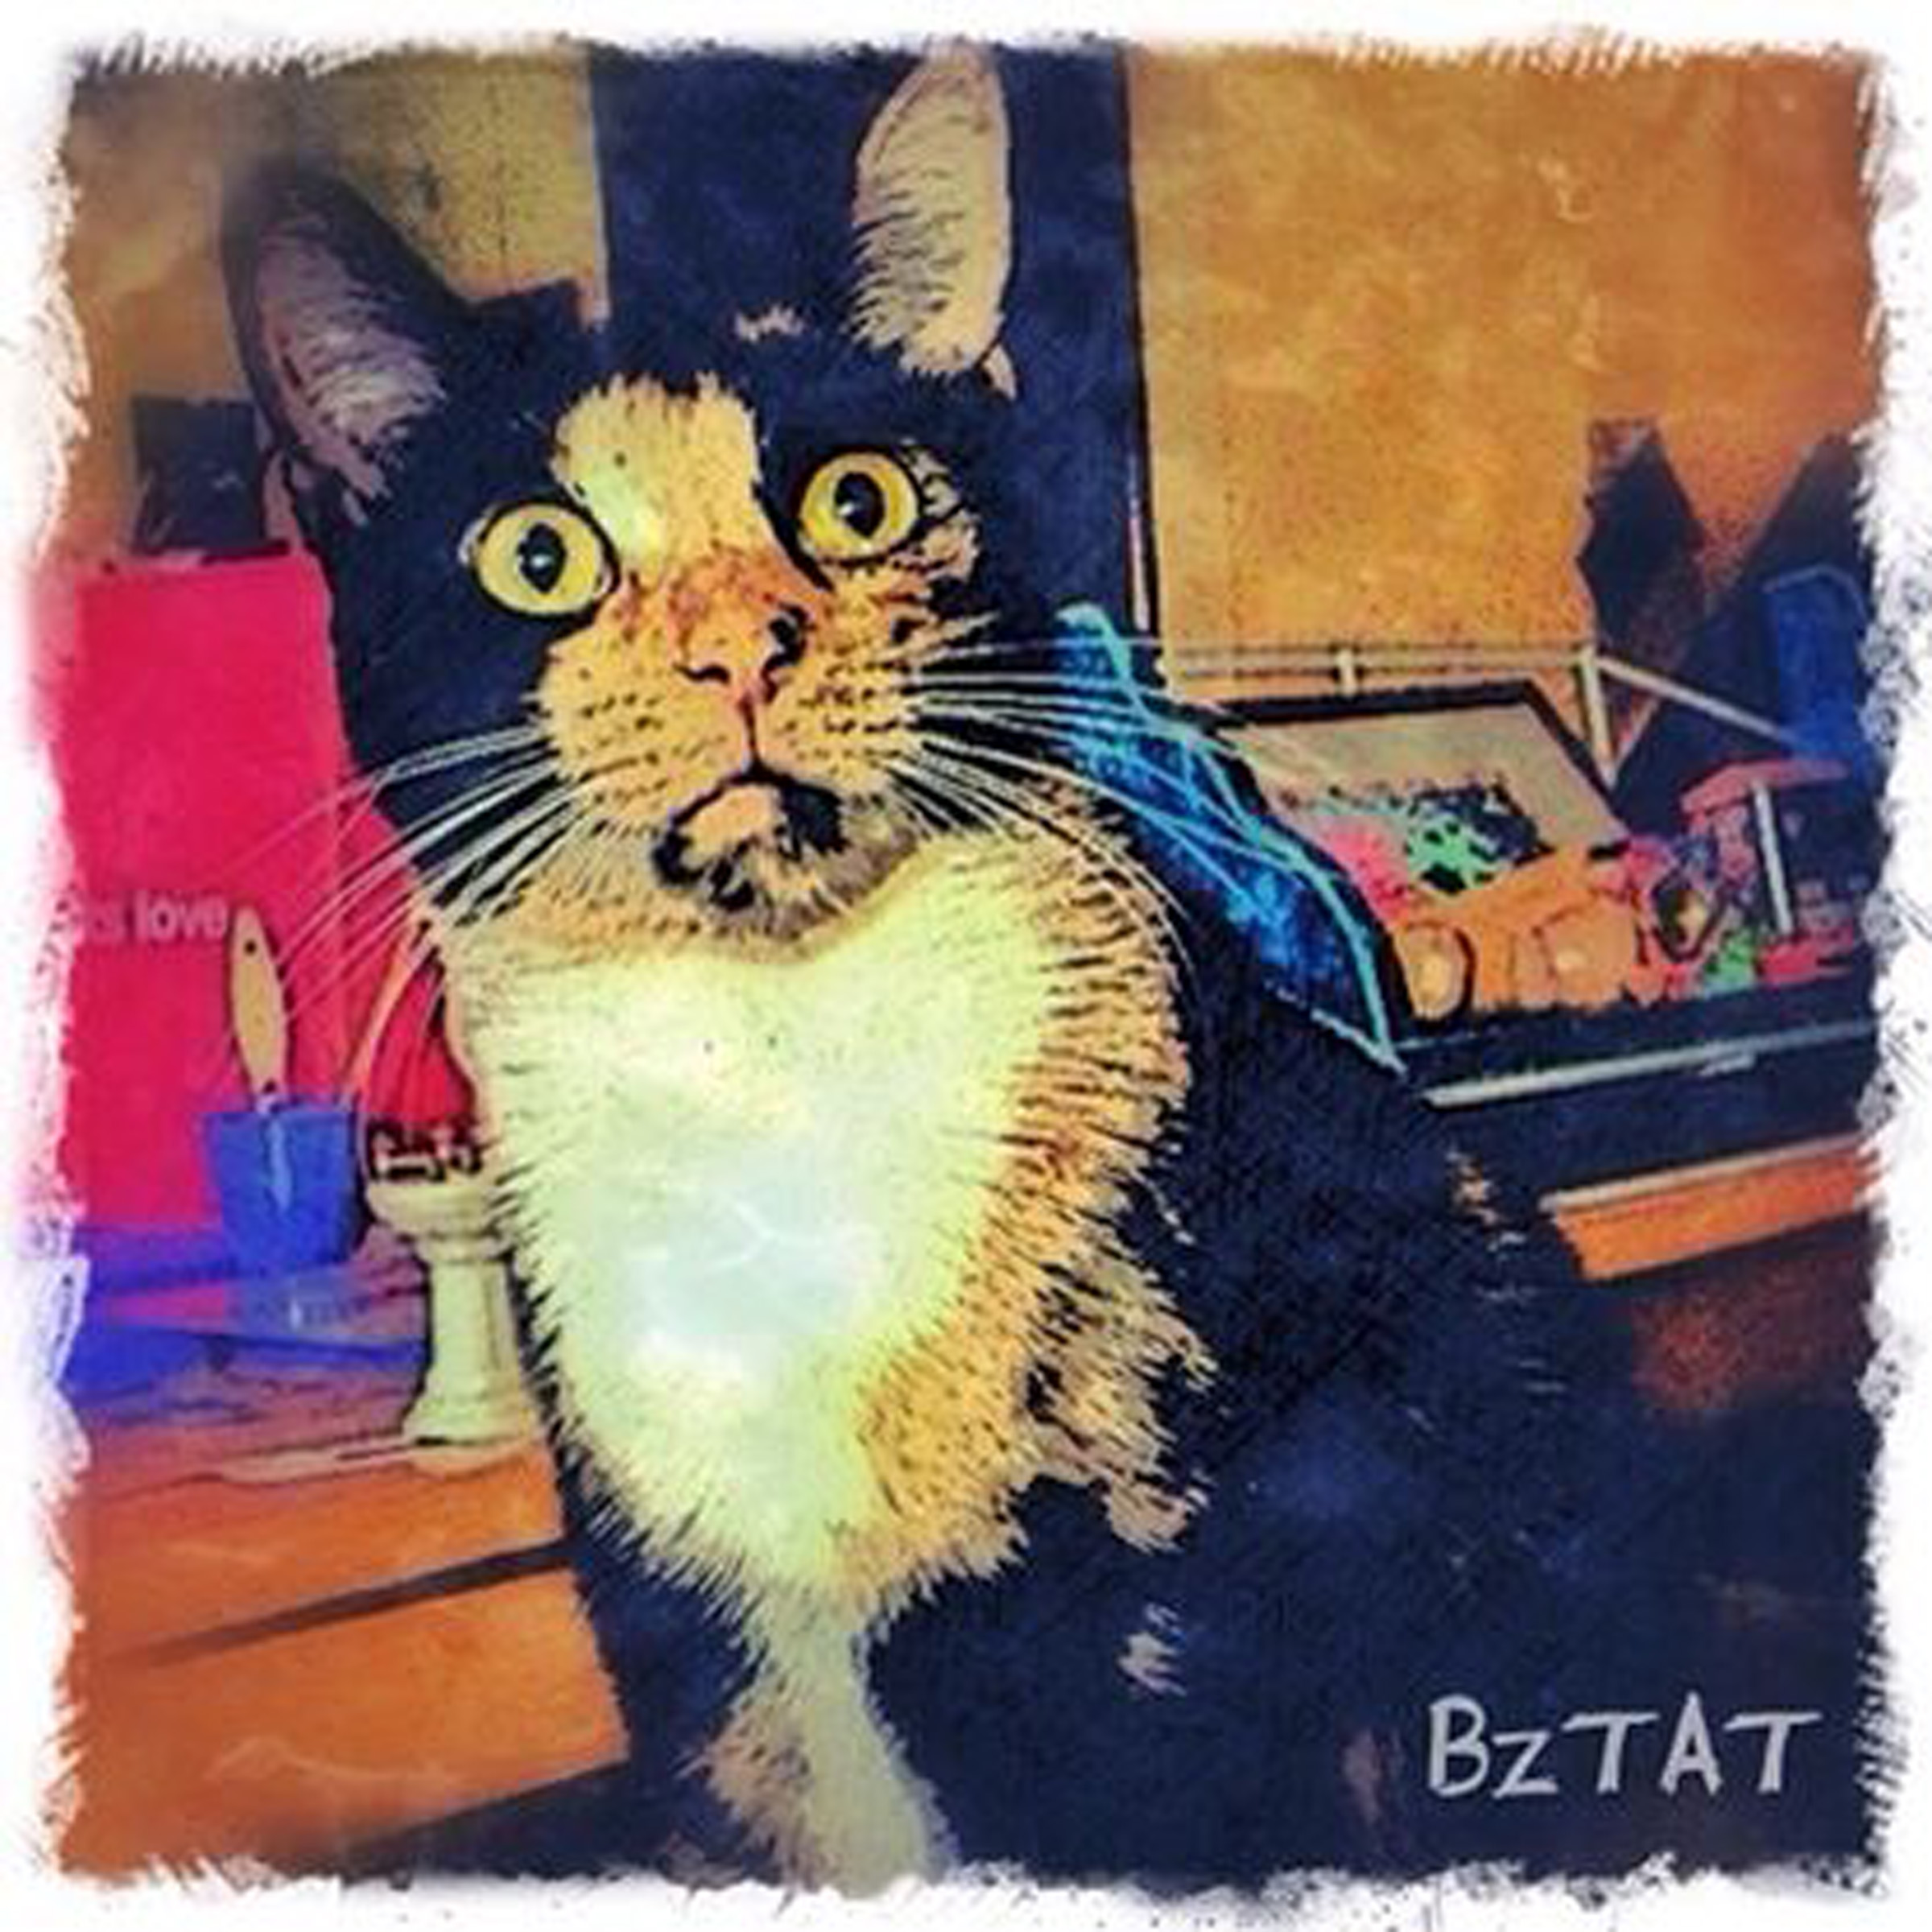 2-Digital-pet-portrait-cat-art-calendar-BZTAT